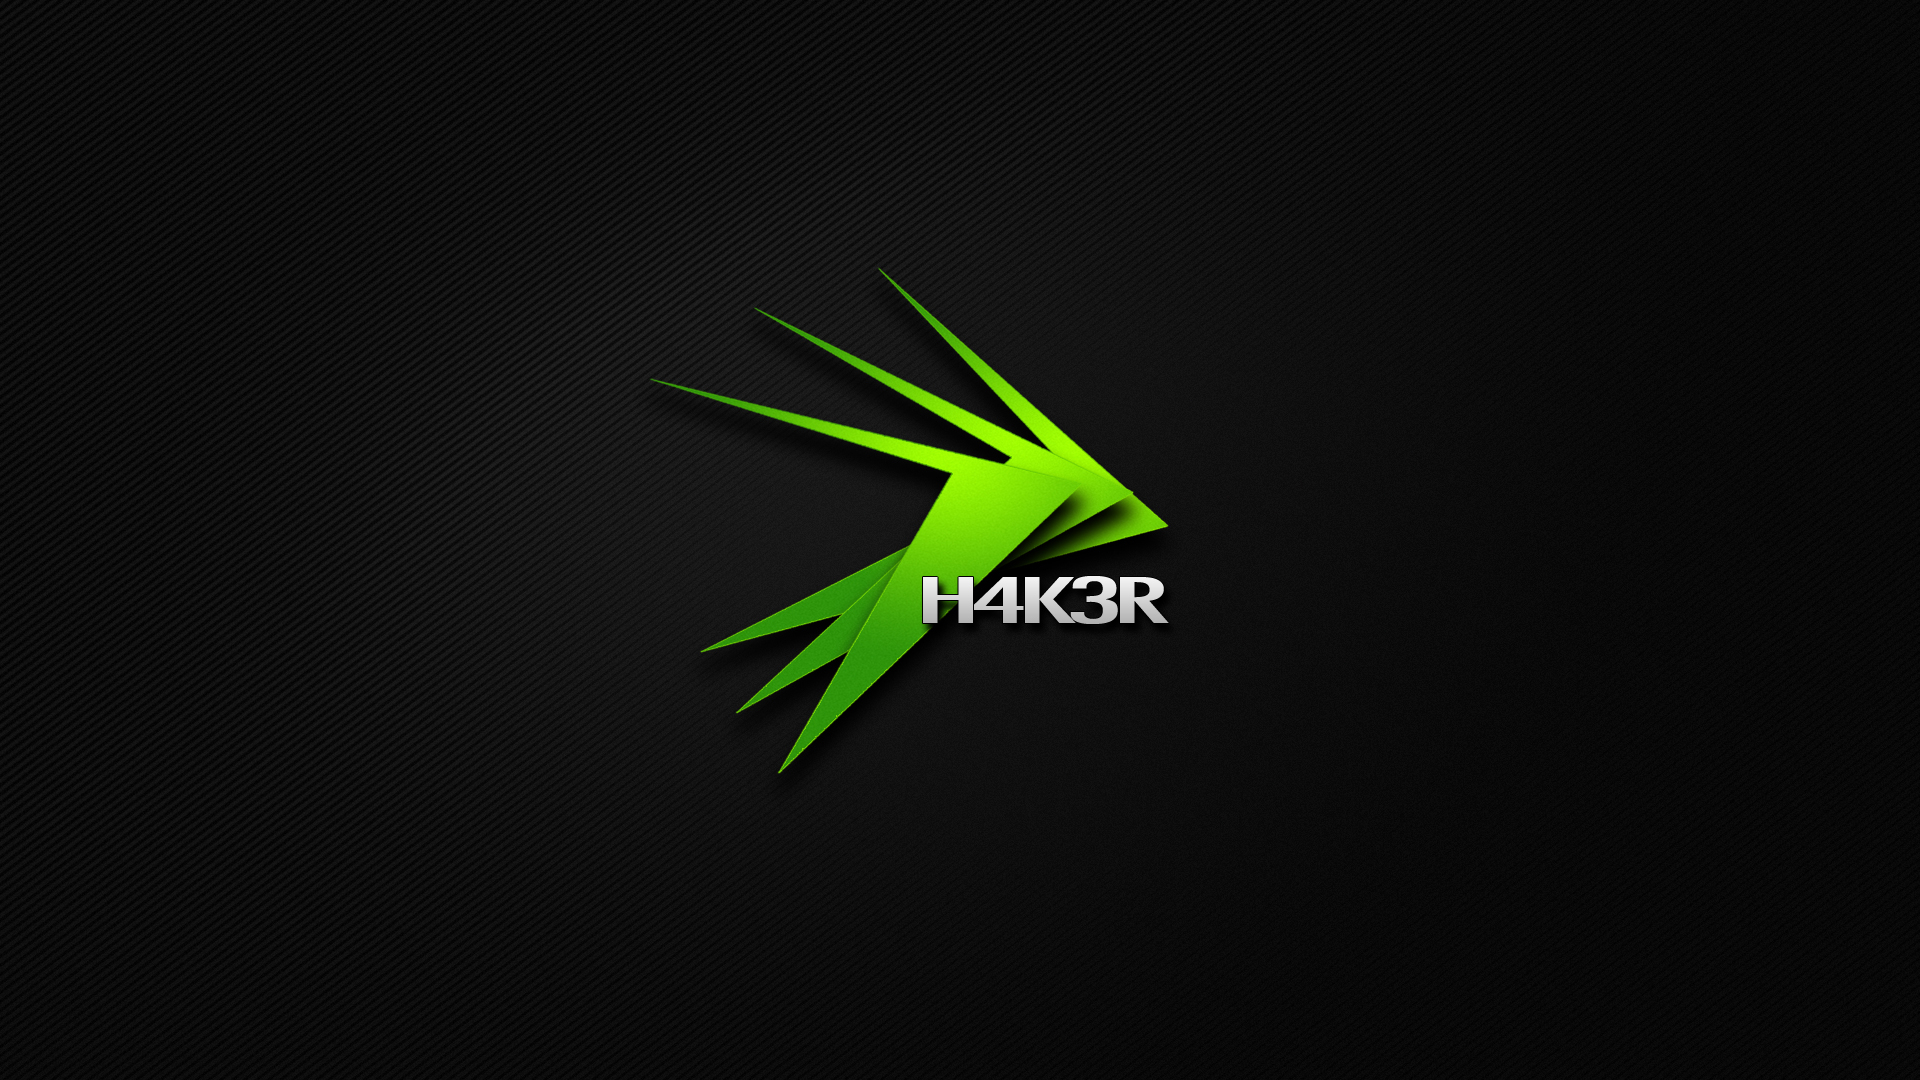 hackinG wallpaper Tagged with hacking desktops hacking wallpapers 1920x1080